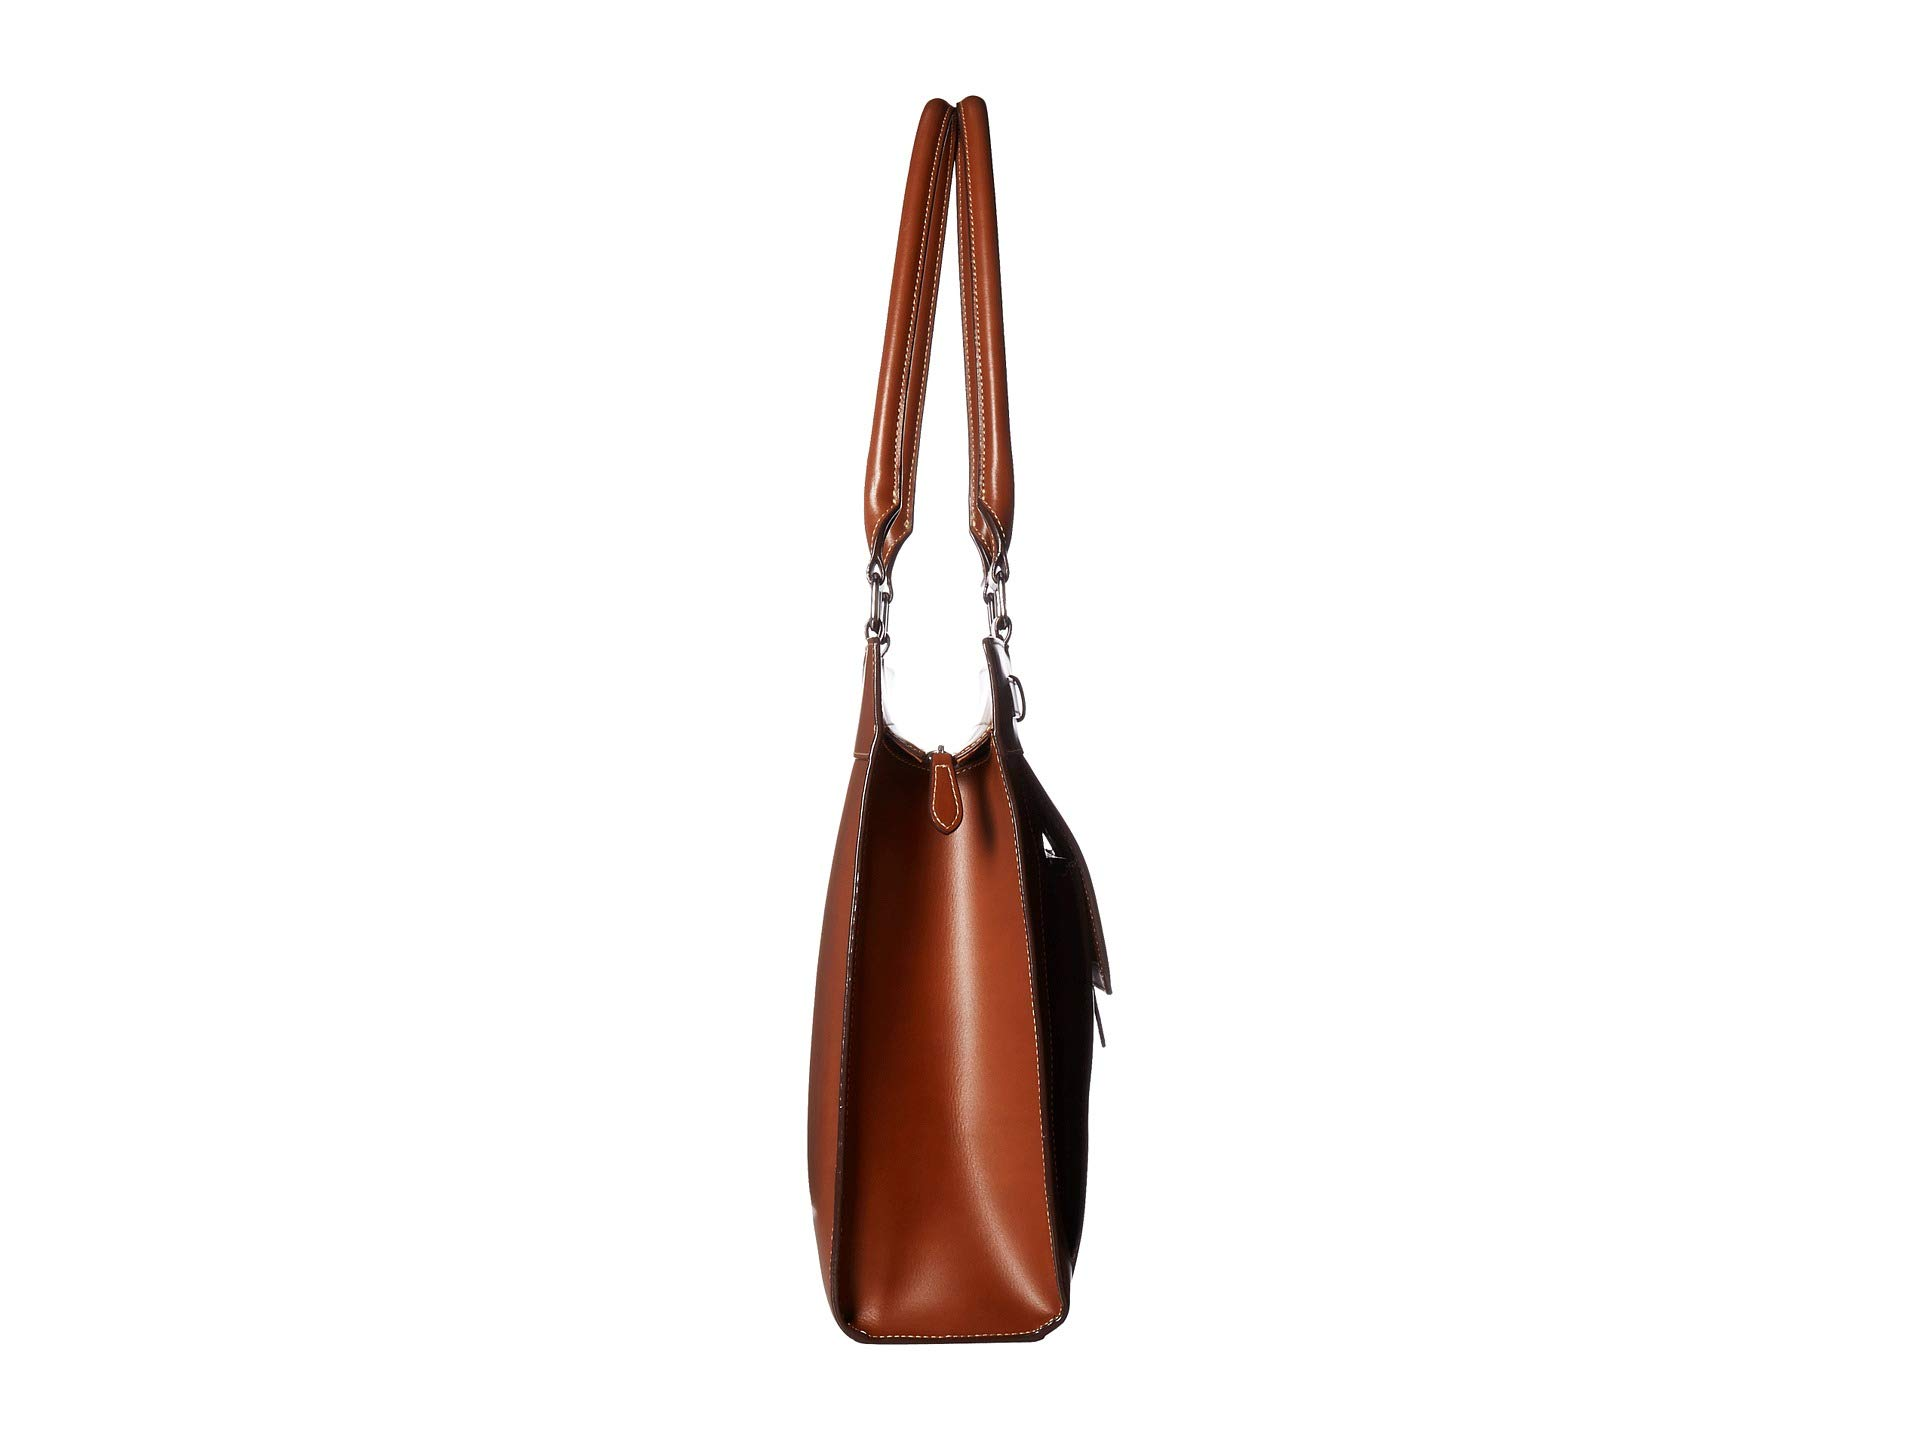 Brief Rfid Sequoia Audrey Eileen Accessories Large Lodis 4XqFzwn